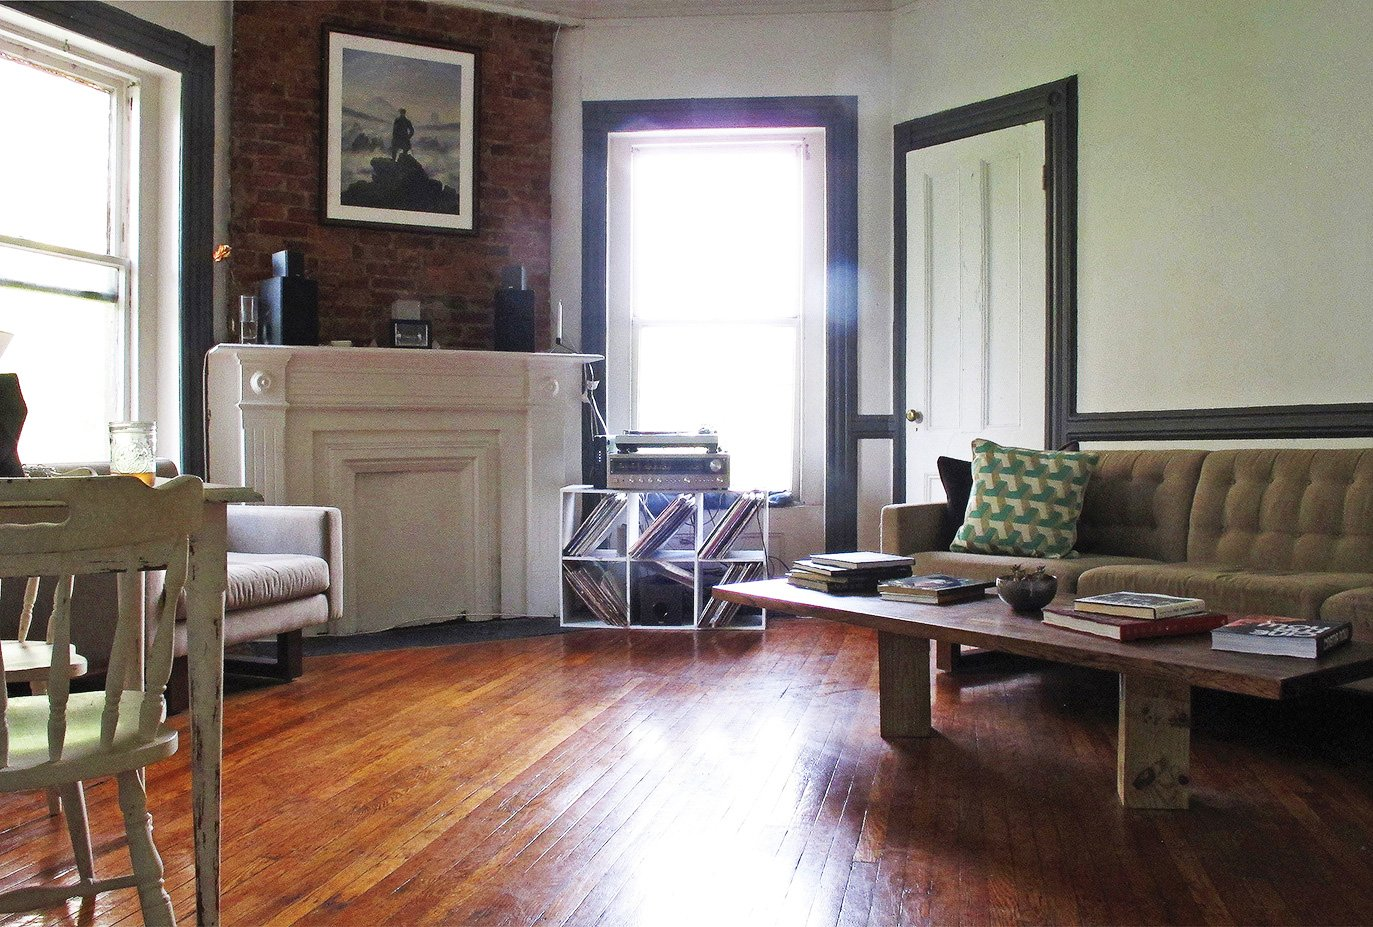 jonathan wing, new york roommate search, brooklyn apartments for rent, new your apartments for rent, brooklyn rooms for rent, new york rooms for rent, 159 willoughby avenue, fort greene apartments, row house fort greene